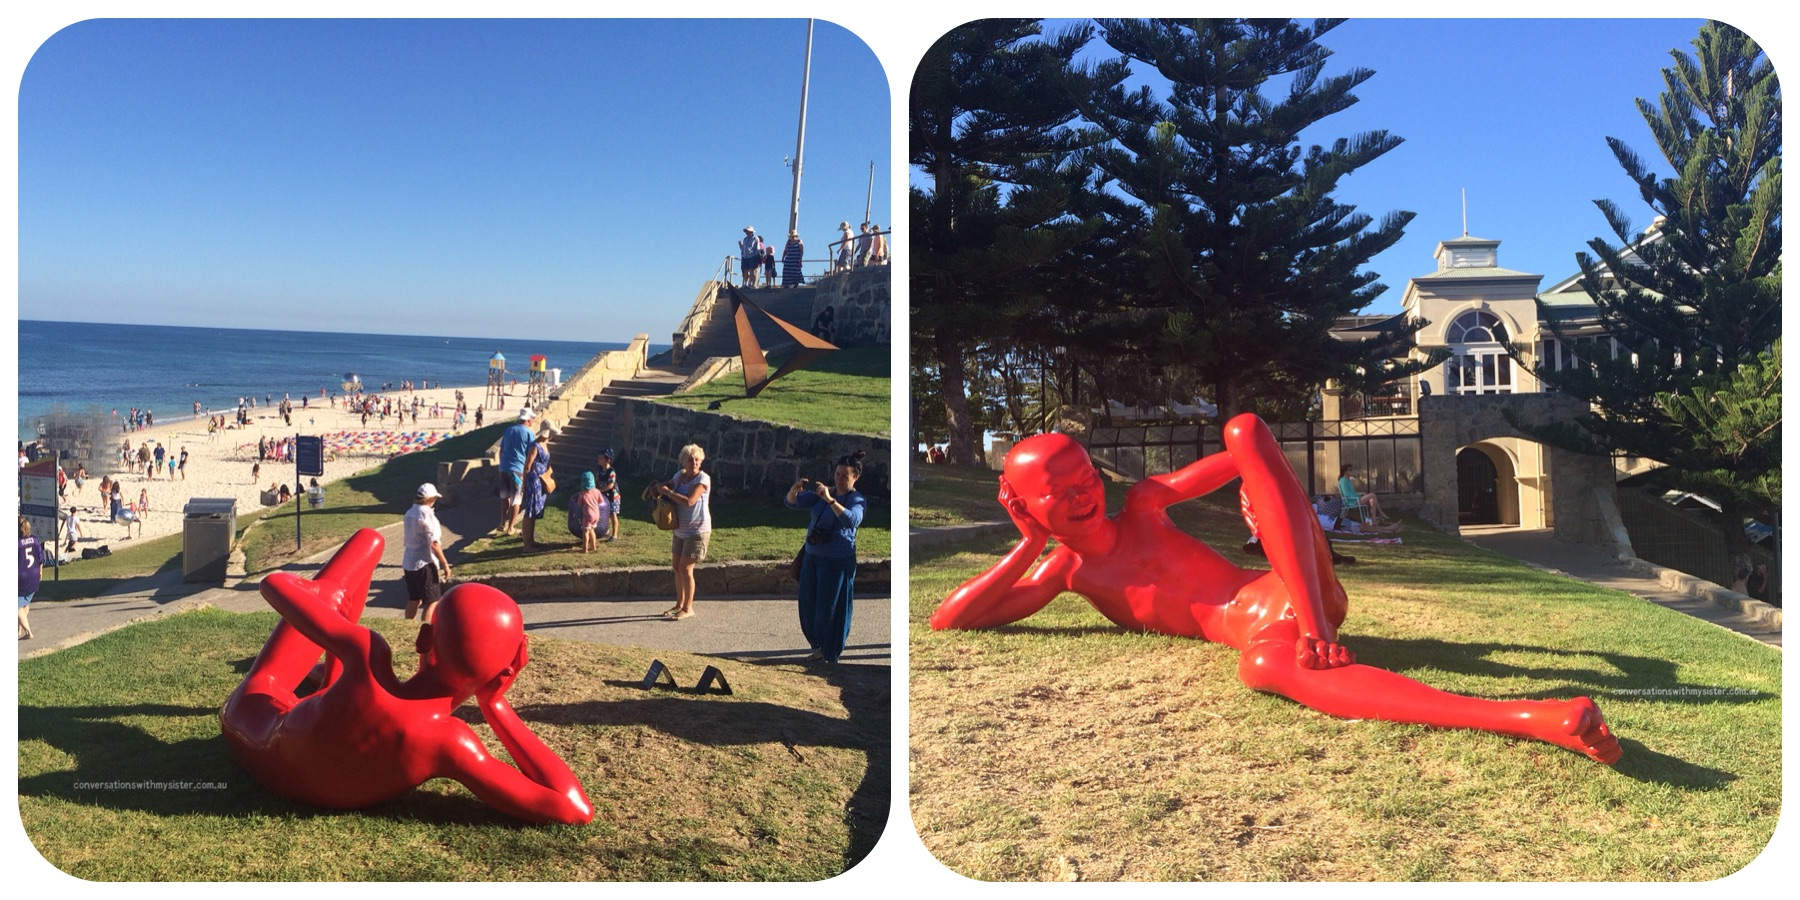 conversationswithmysister_sculptures by the sea